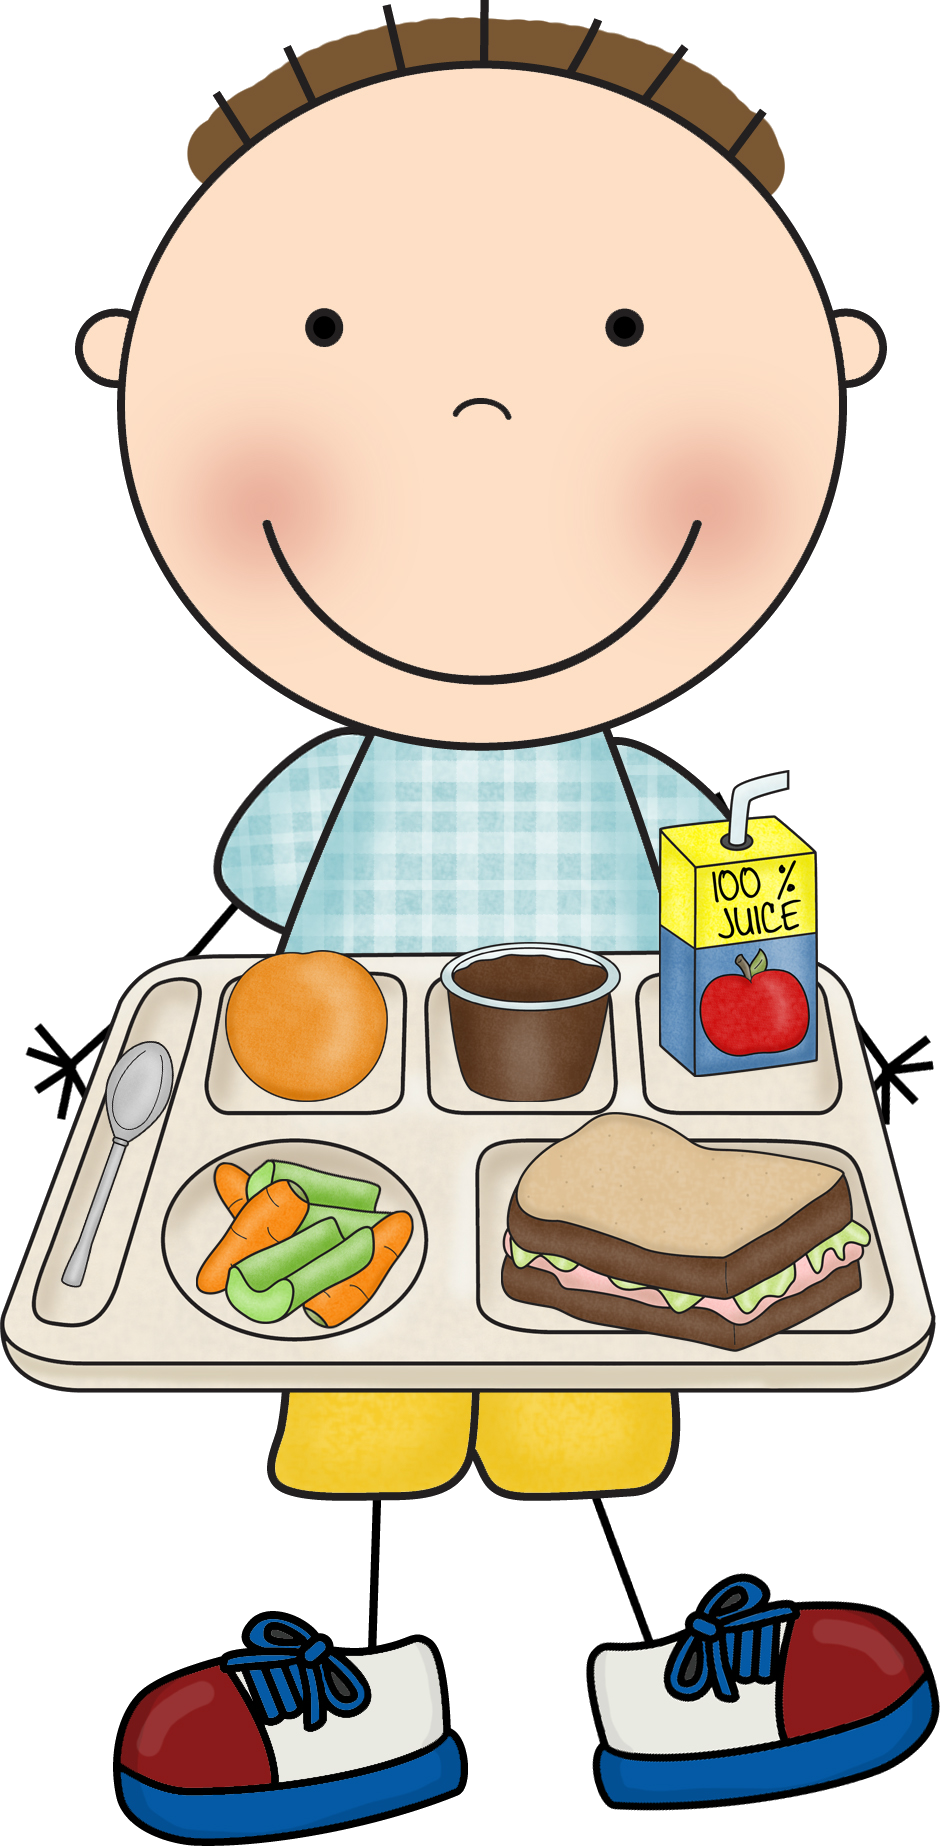 Luncheon clipart parent. For parents image of